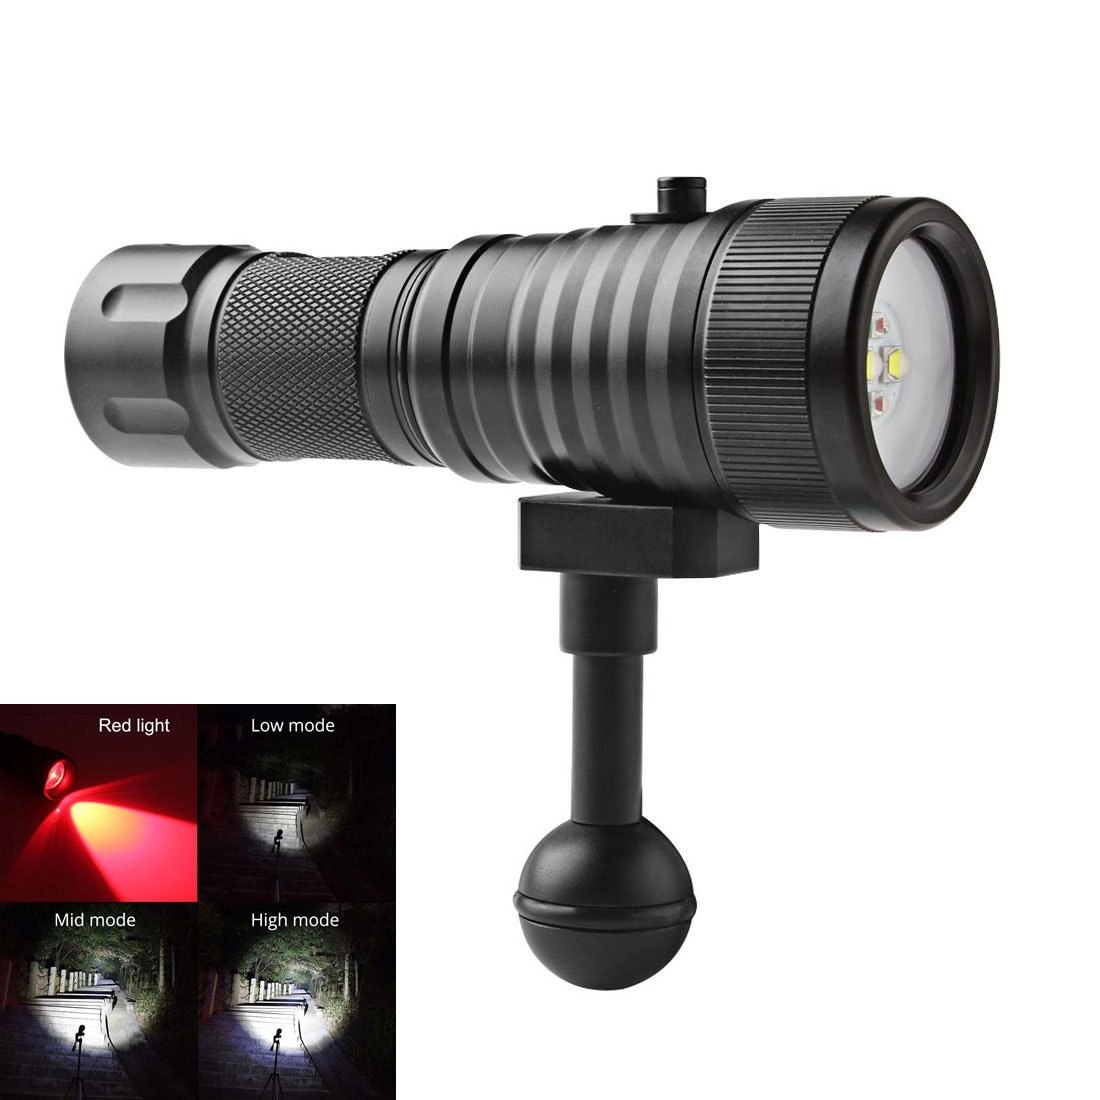 SecurityIng Wide 120 Degrees Beam Angle Scuba Diving Photography Video Flashlight 1500LM with 2 x Cree XM-L2(U4) White Light + 2 x XP-E R5 Red LED(Battery Not Included)